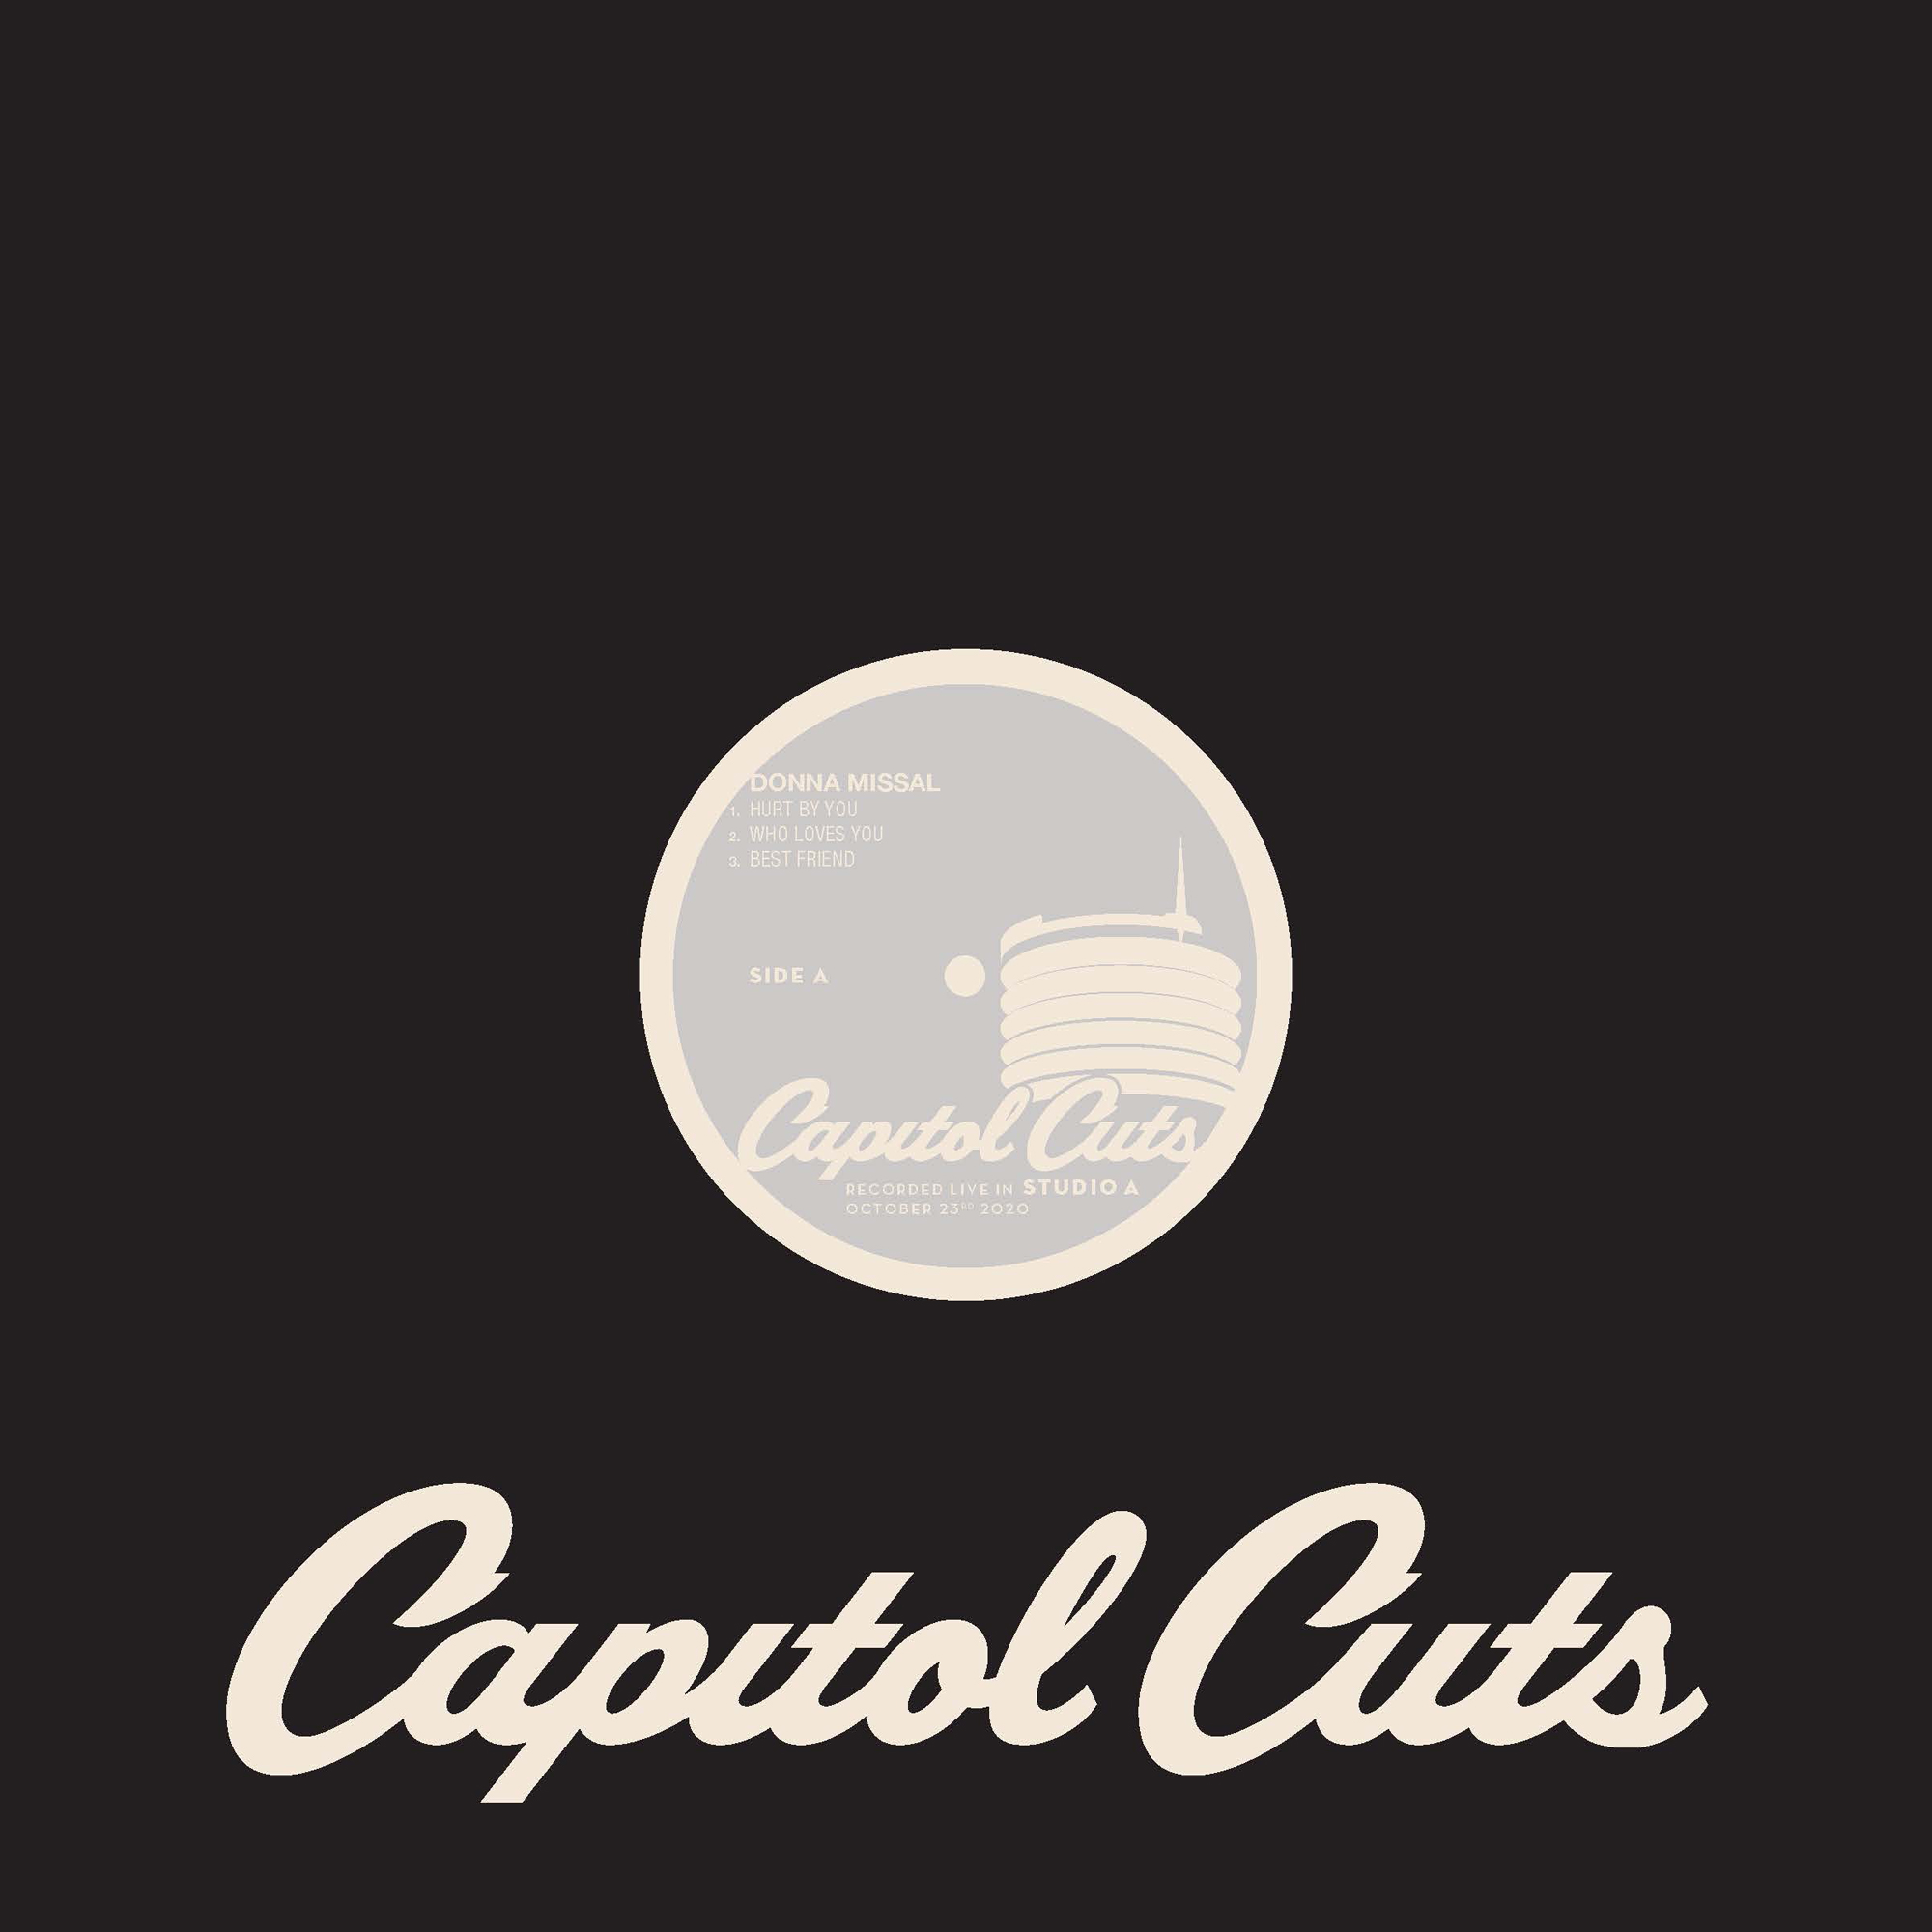 Donna Missal Capitol Cuts - Live From Studio A LP